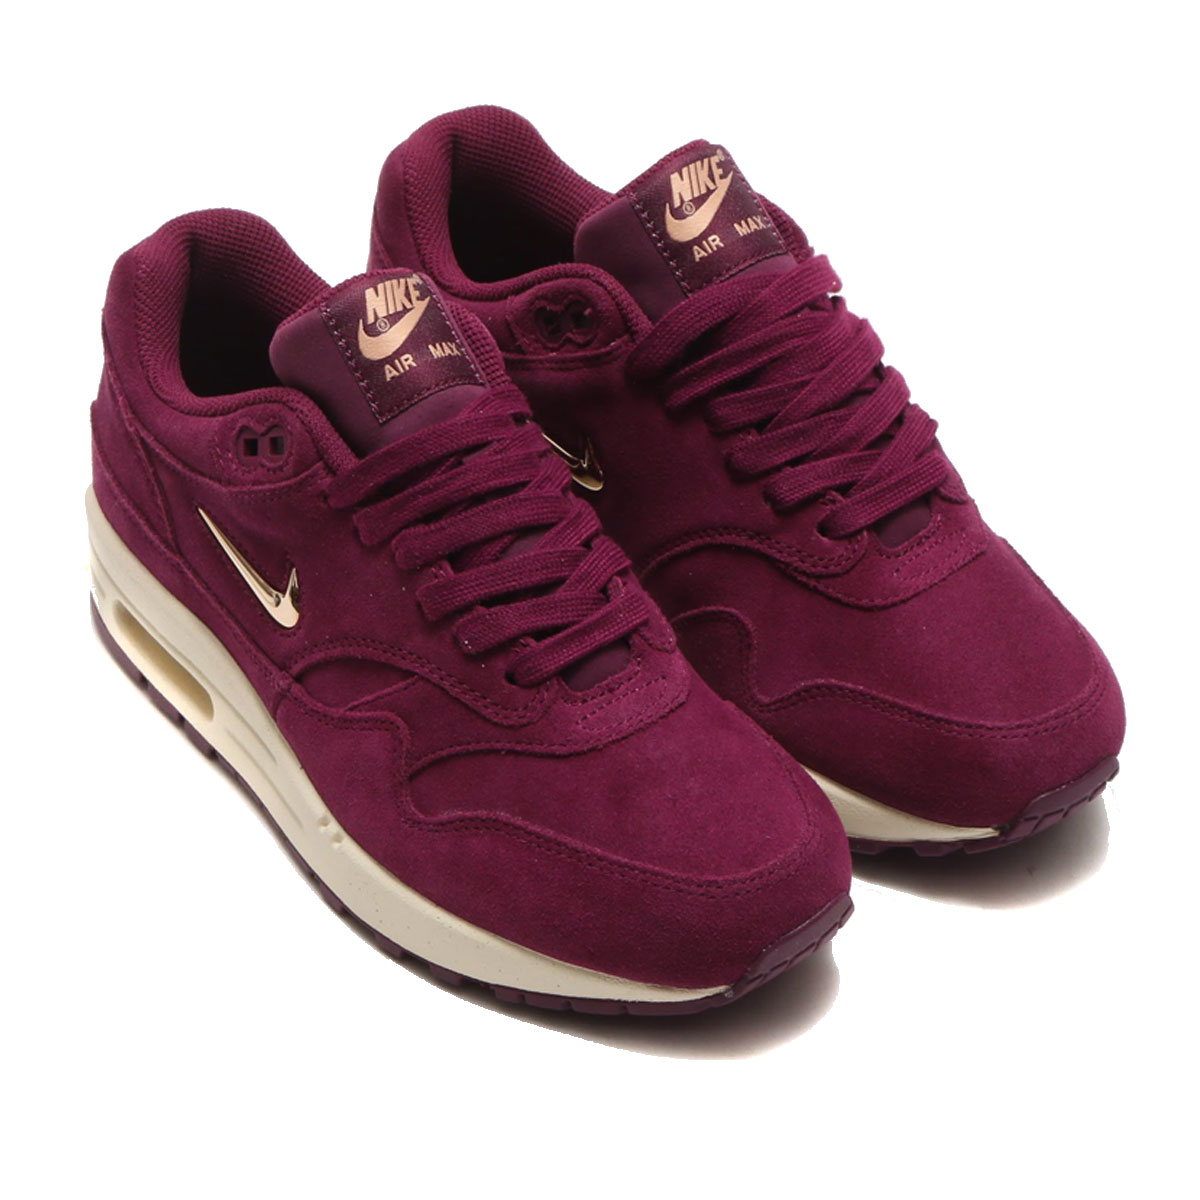 nike air max 1 premium jewel red nz